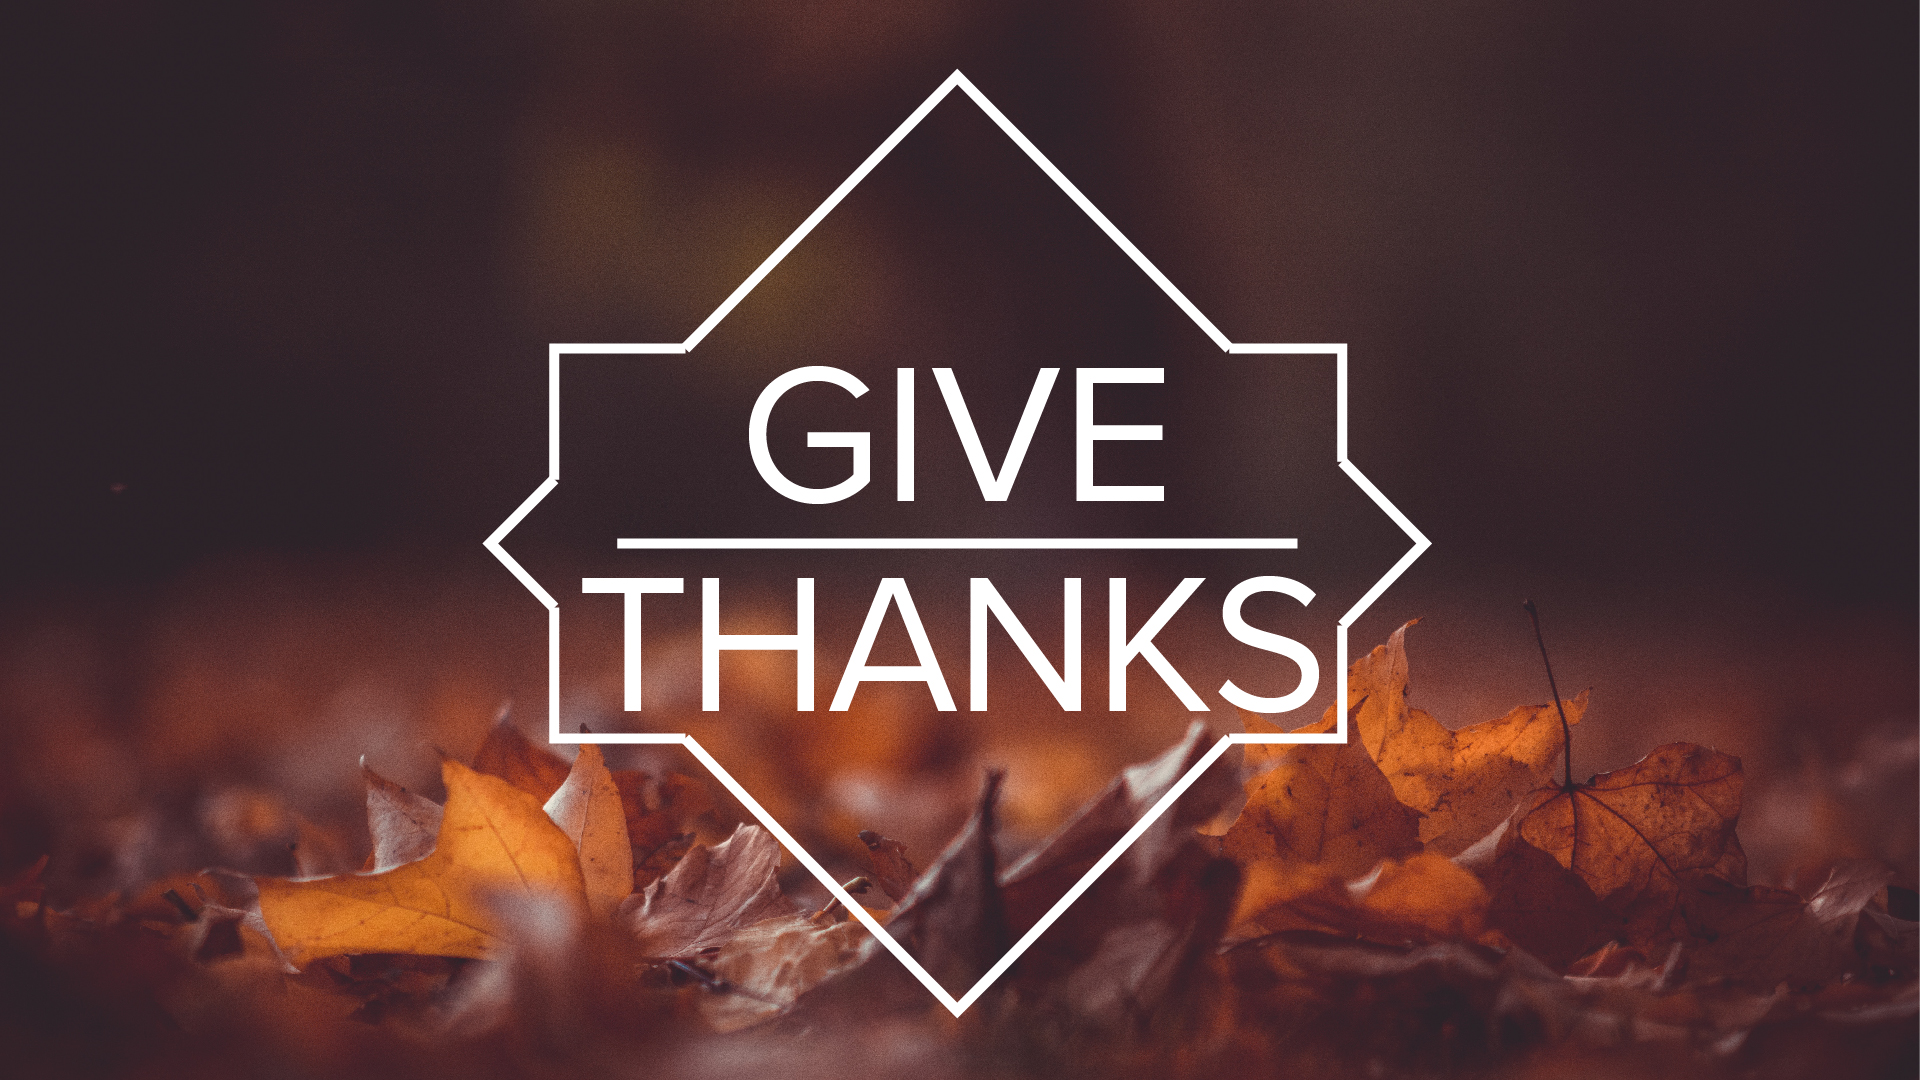 Give Thanks-02.jpg